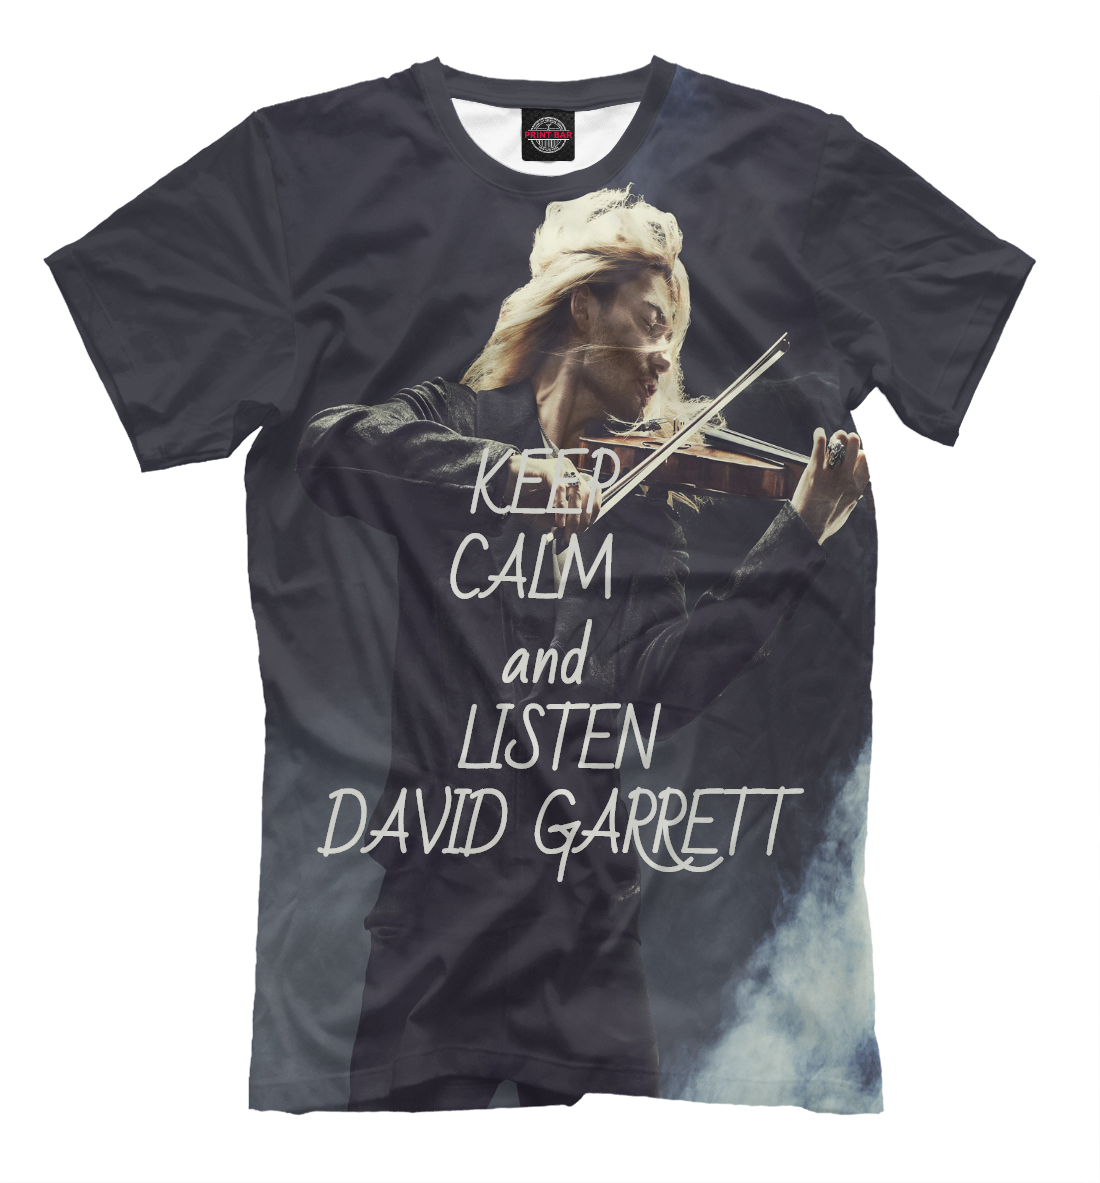 Купить Keep calm and listen David Garrett, Printbar, Футболки, MZK-183982-fut-2